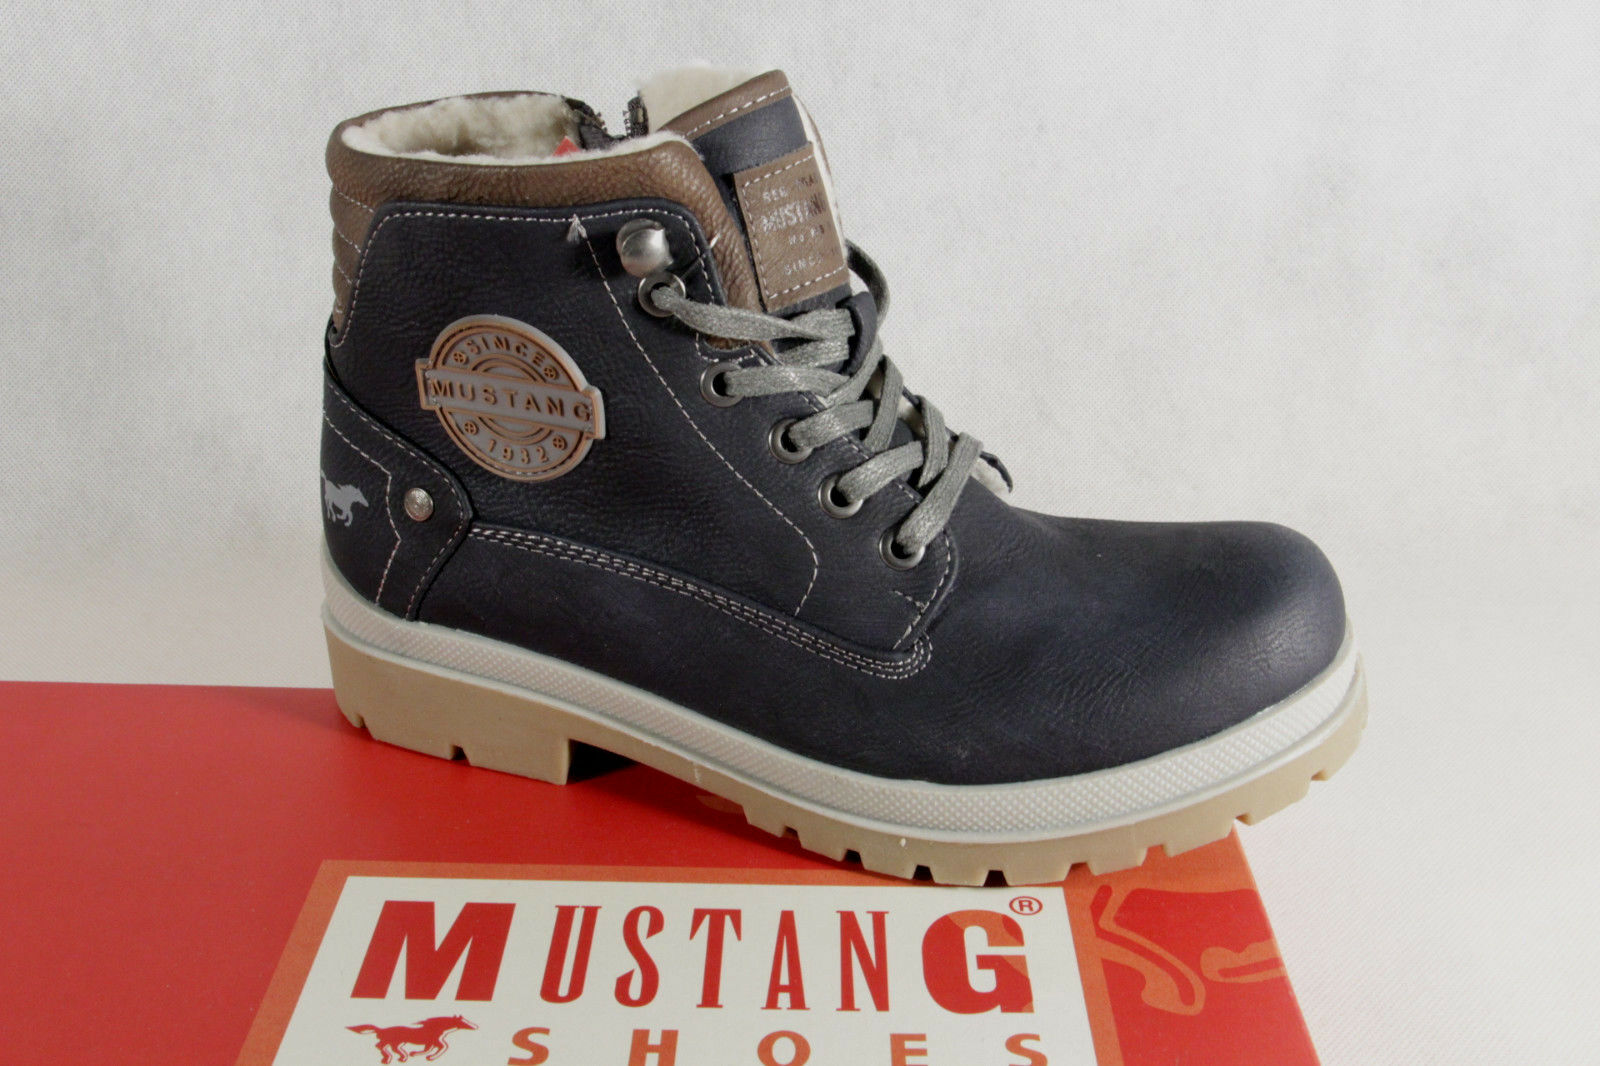 Mustang Ankle Boots Lace up Boots Boots bluee 5037 New